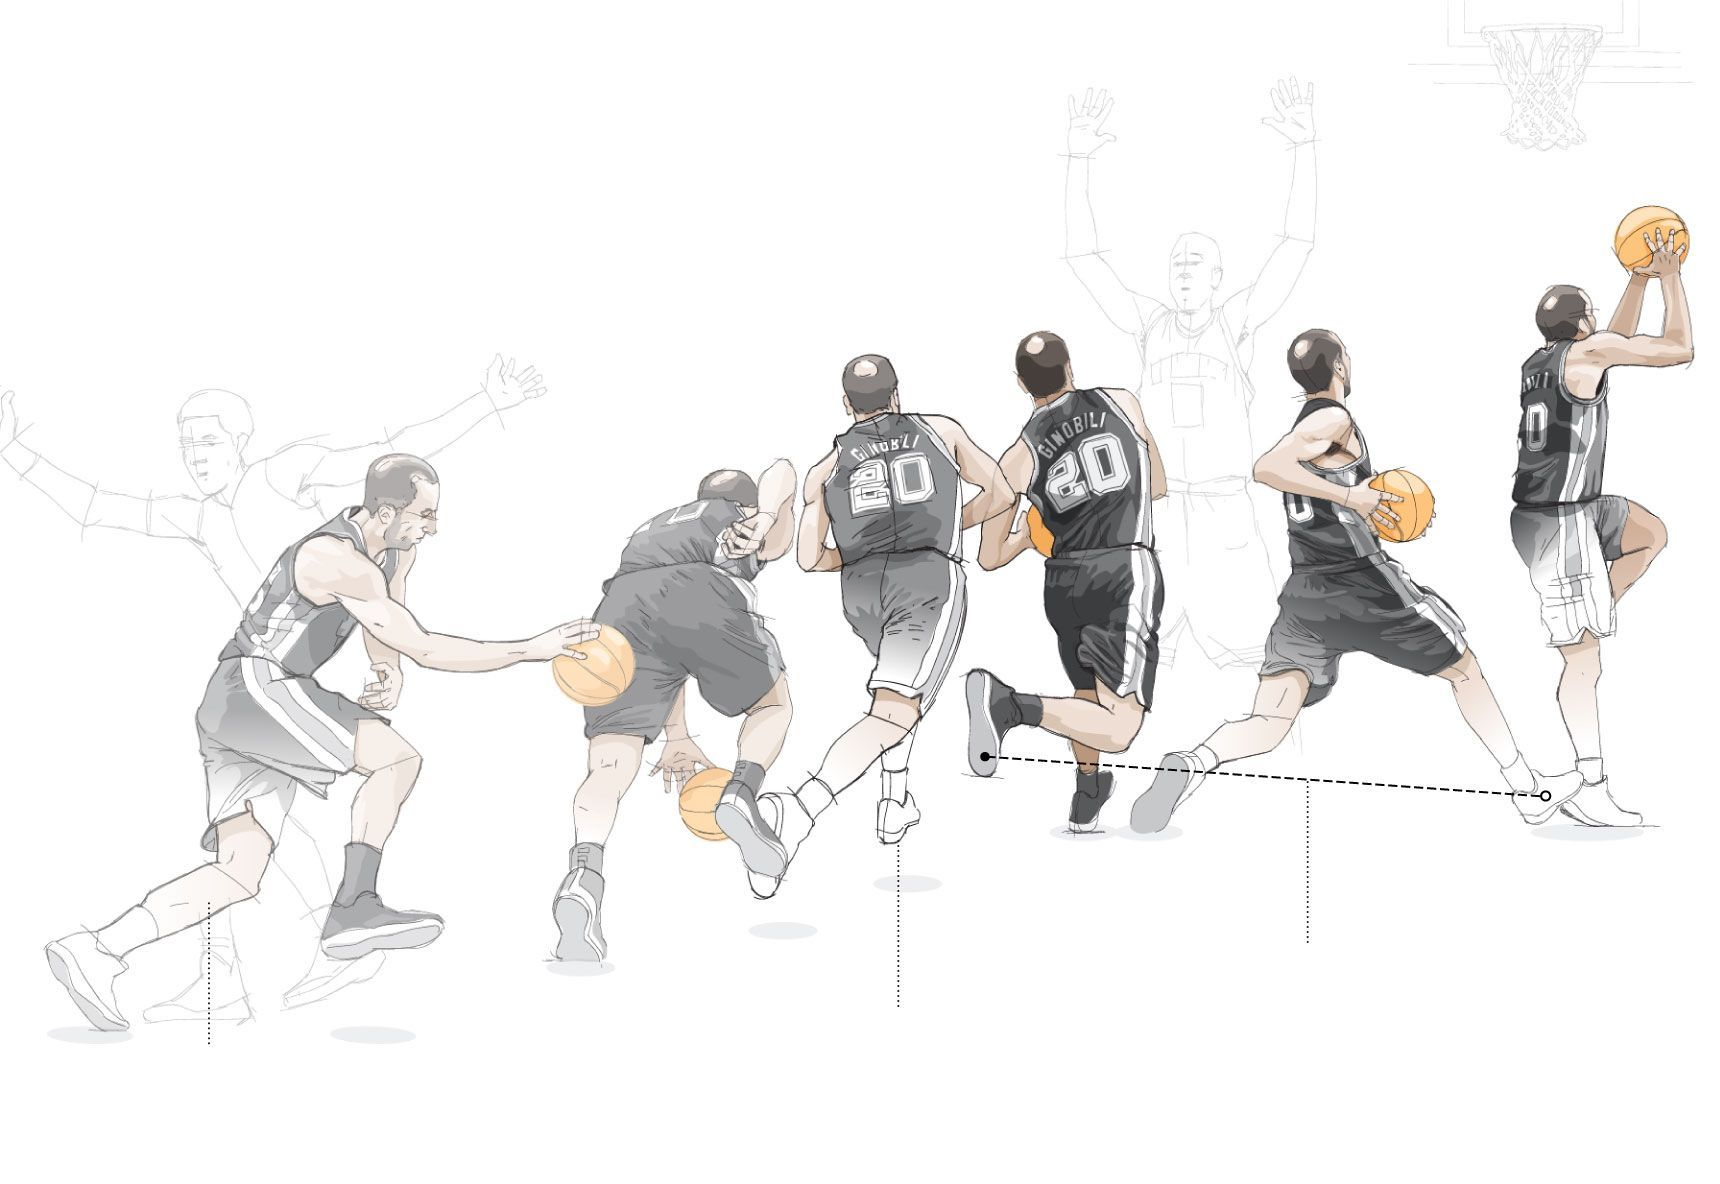 One Eurostep for Manu. One Giant Leap for Mankind. (con